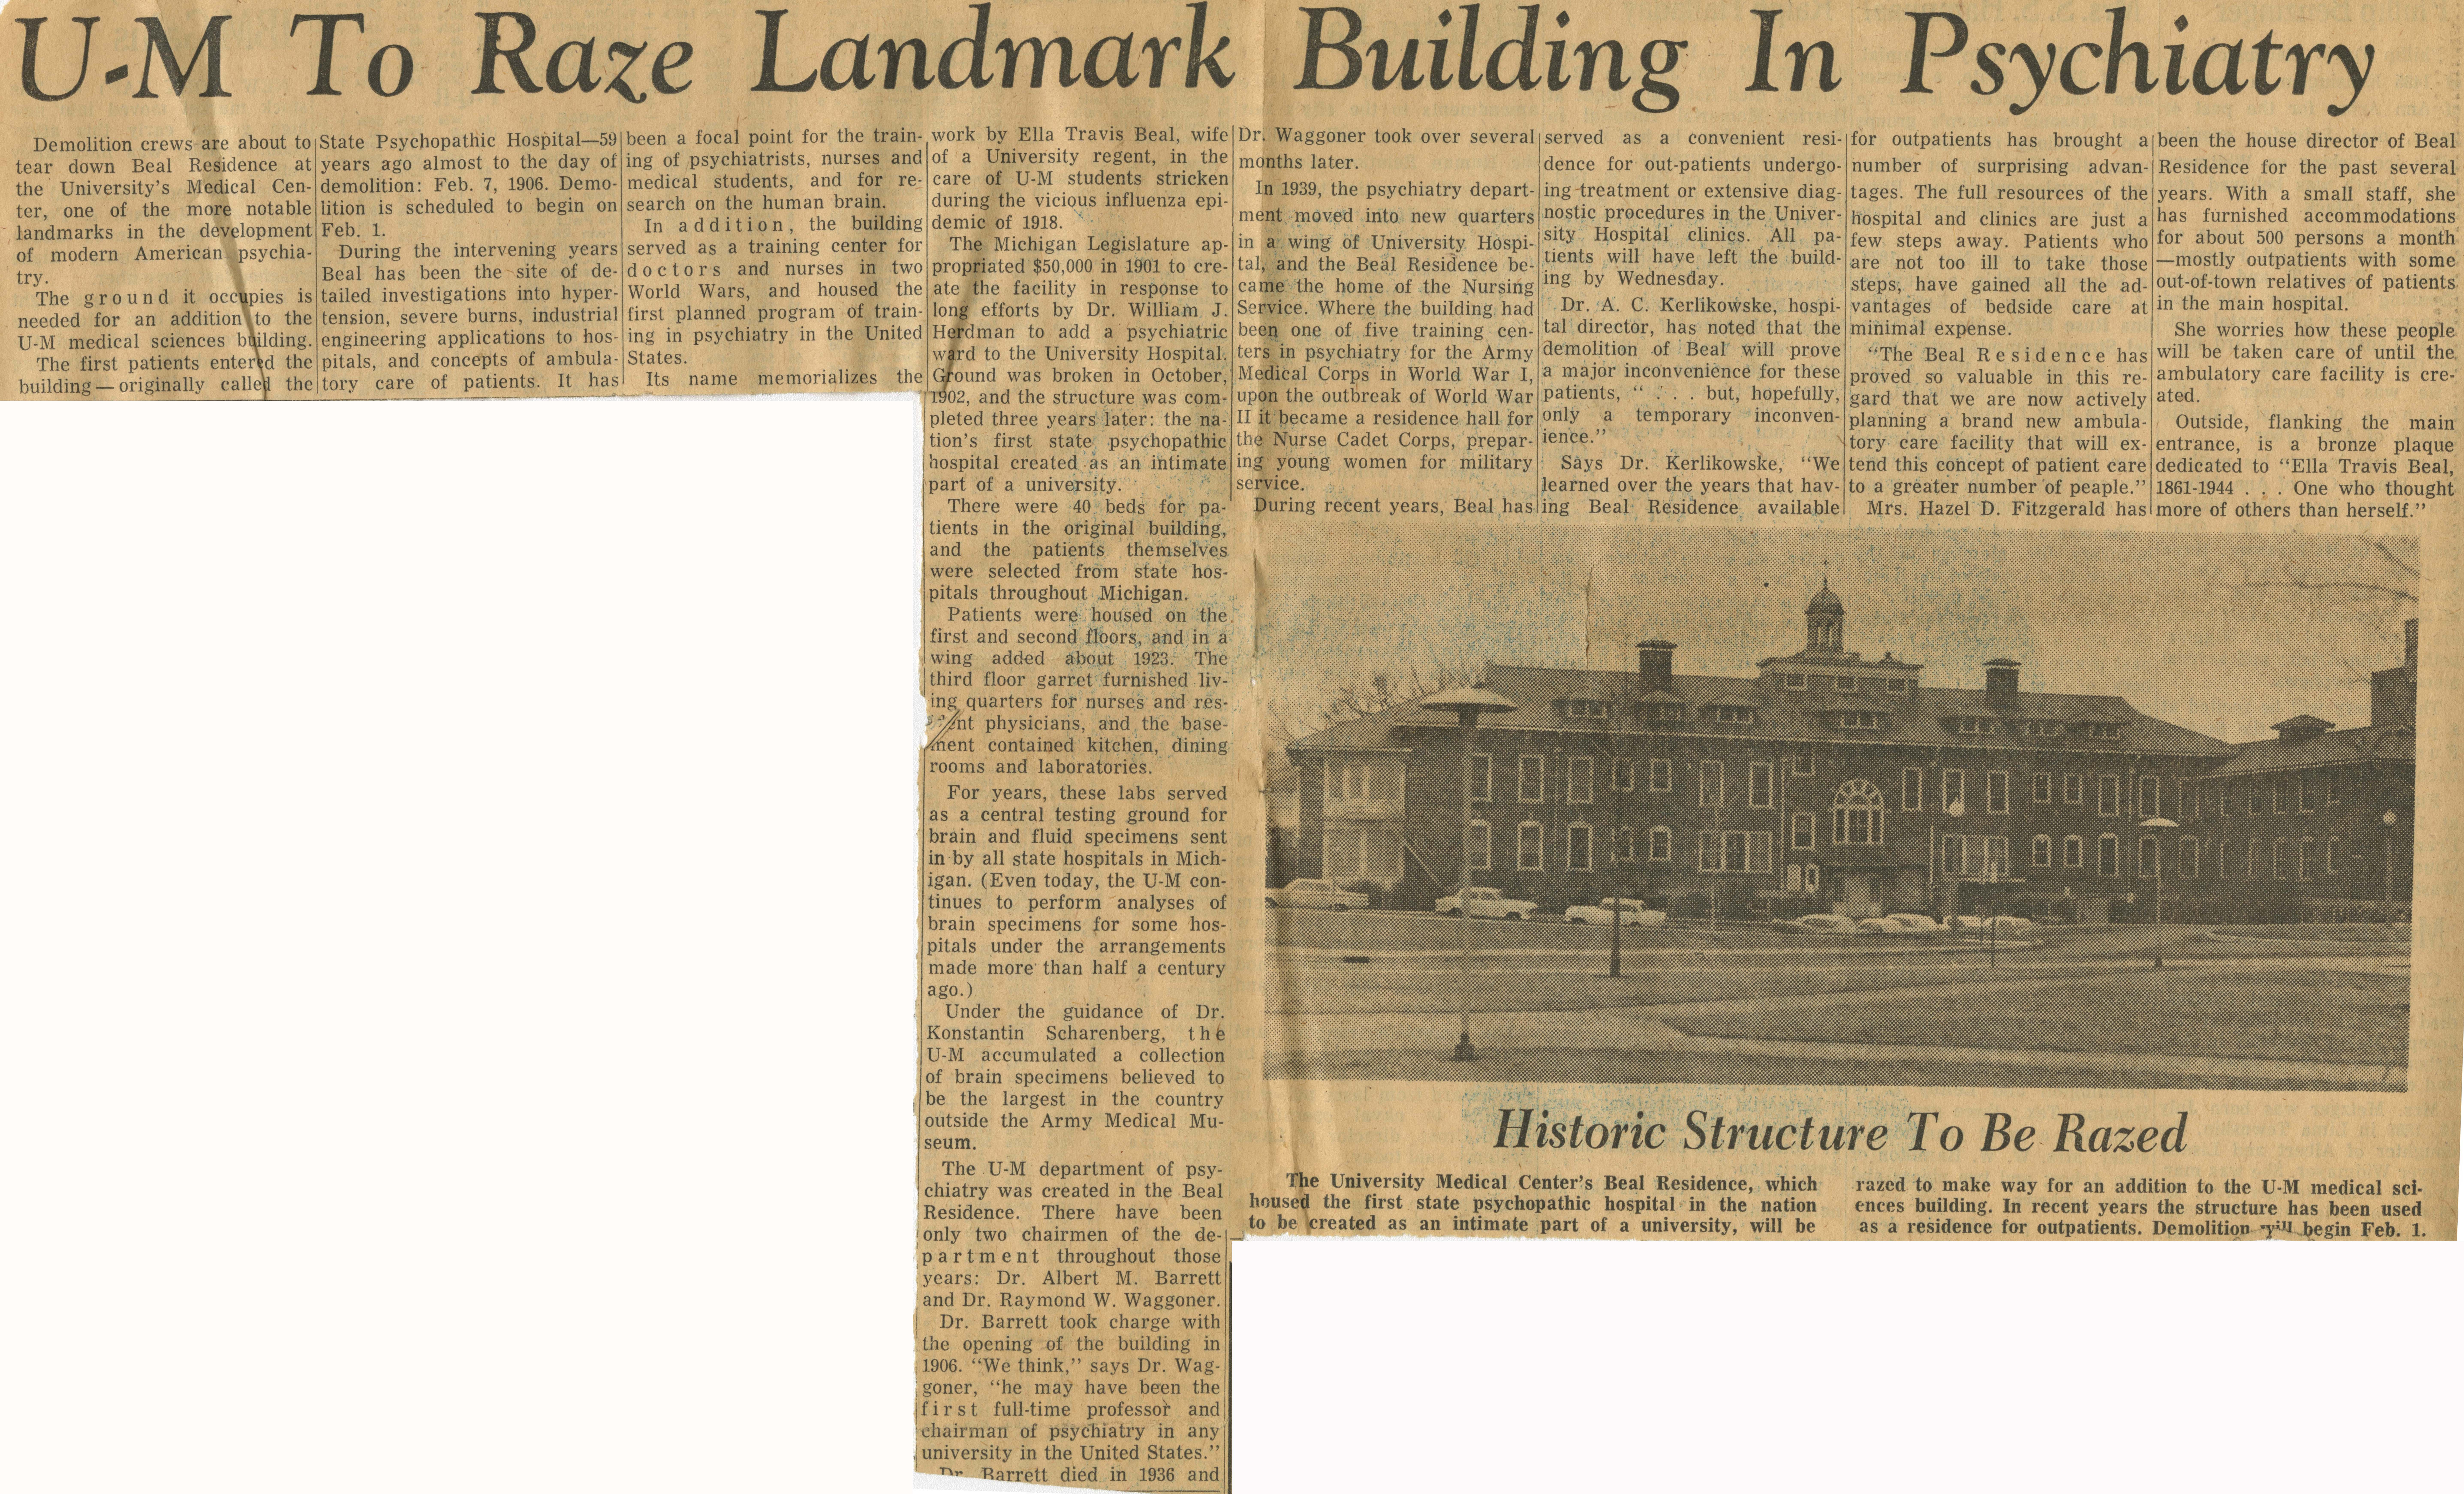 U-M To Raze Landmark Building In Psychiatry image